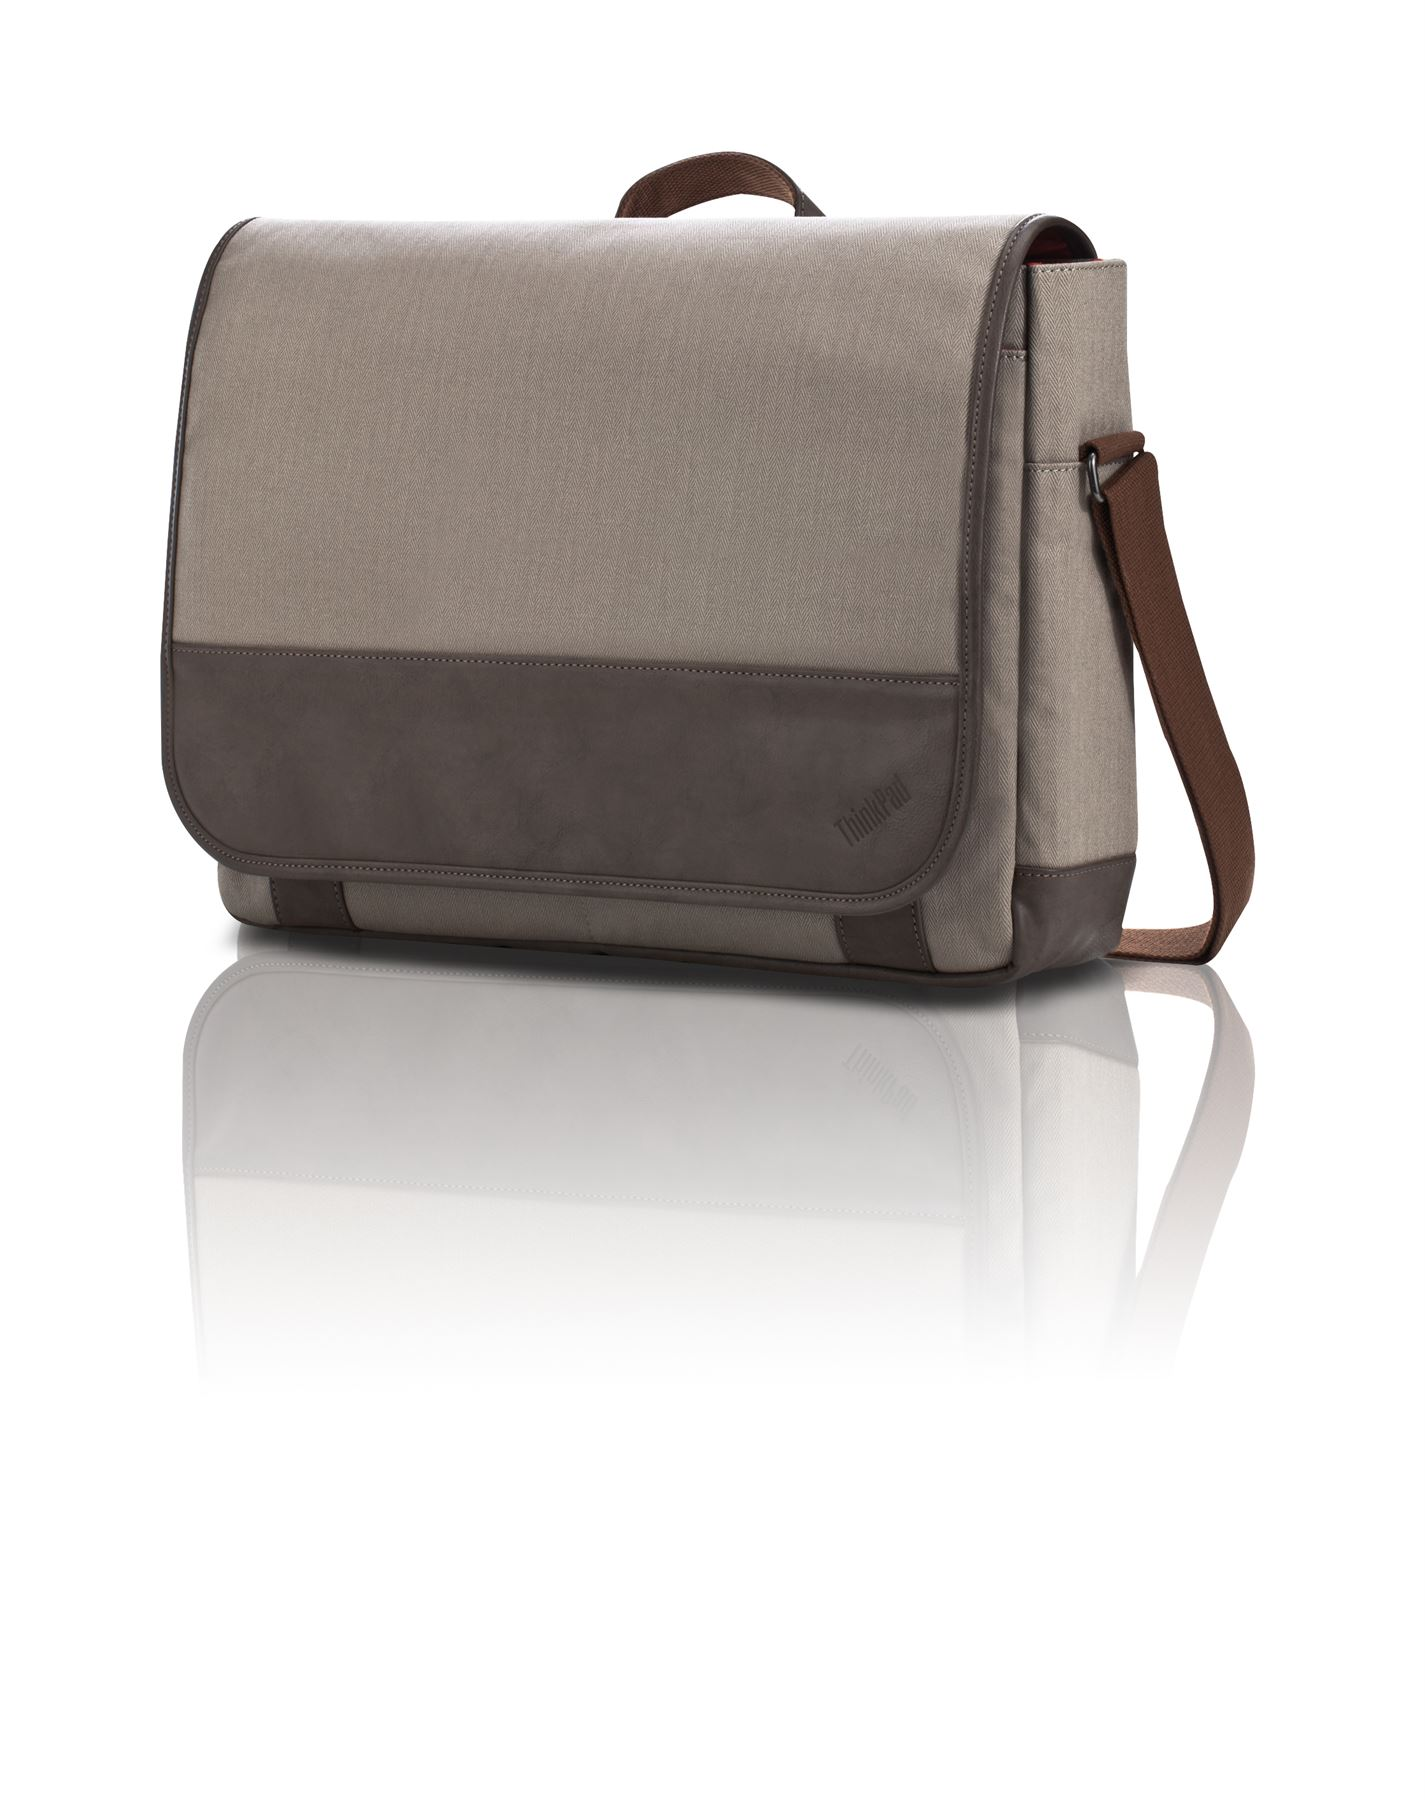 ThinkPad® Casual Messenger Bag - 4X40E77334 - Tan: Messengers: Targus